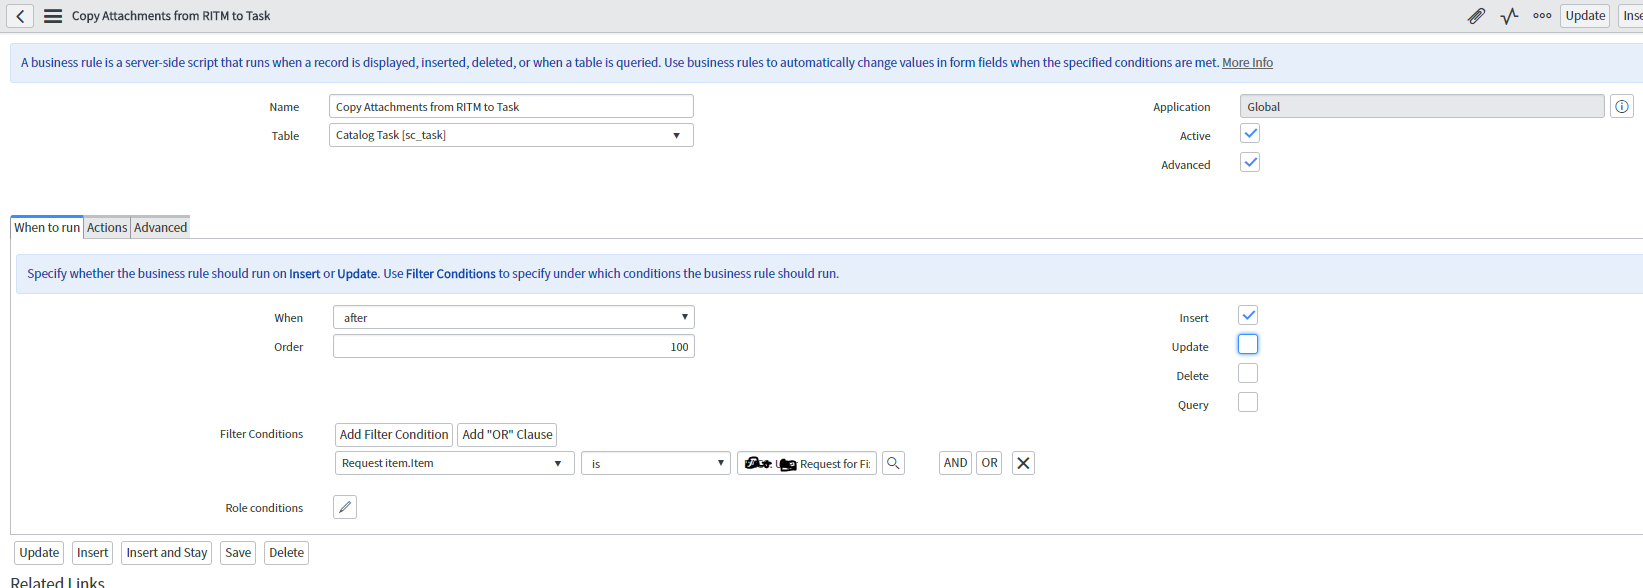 How to copy attachments from RITM to taks - Developer